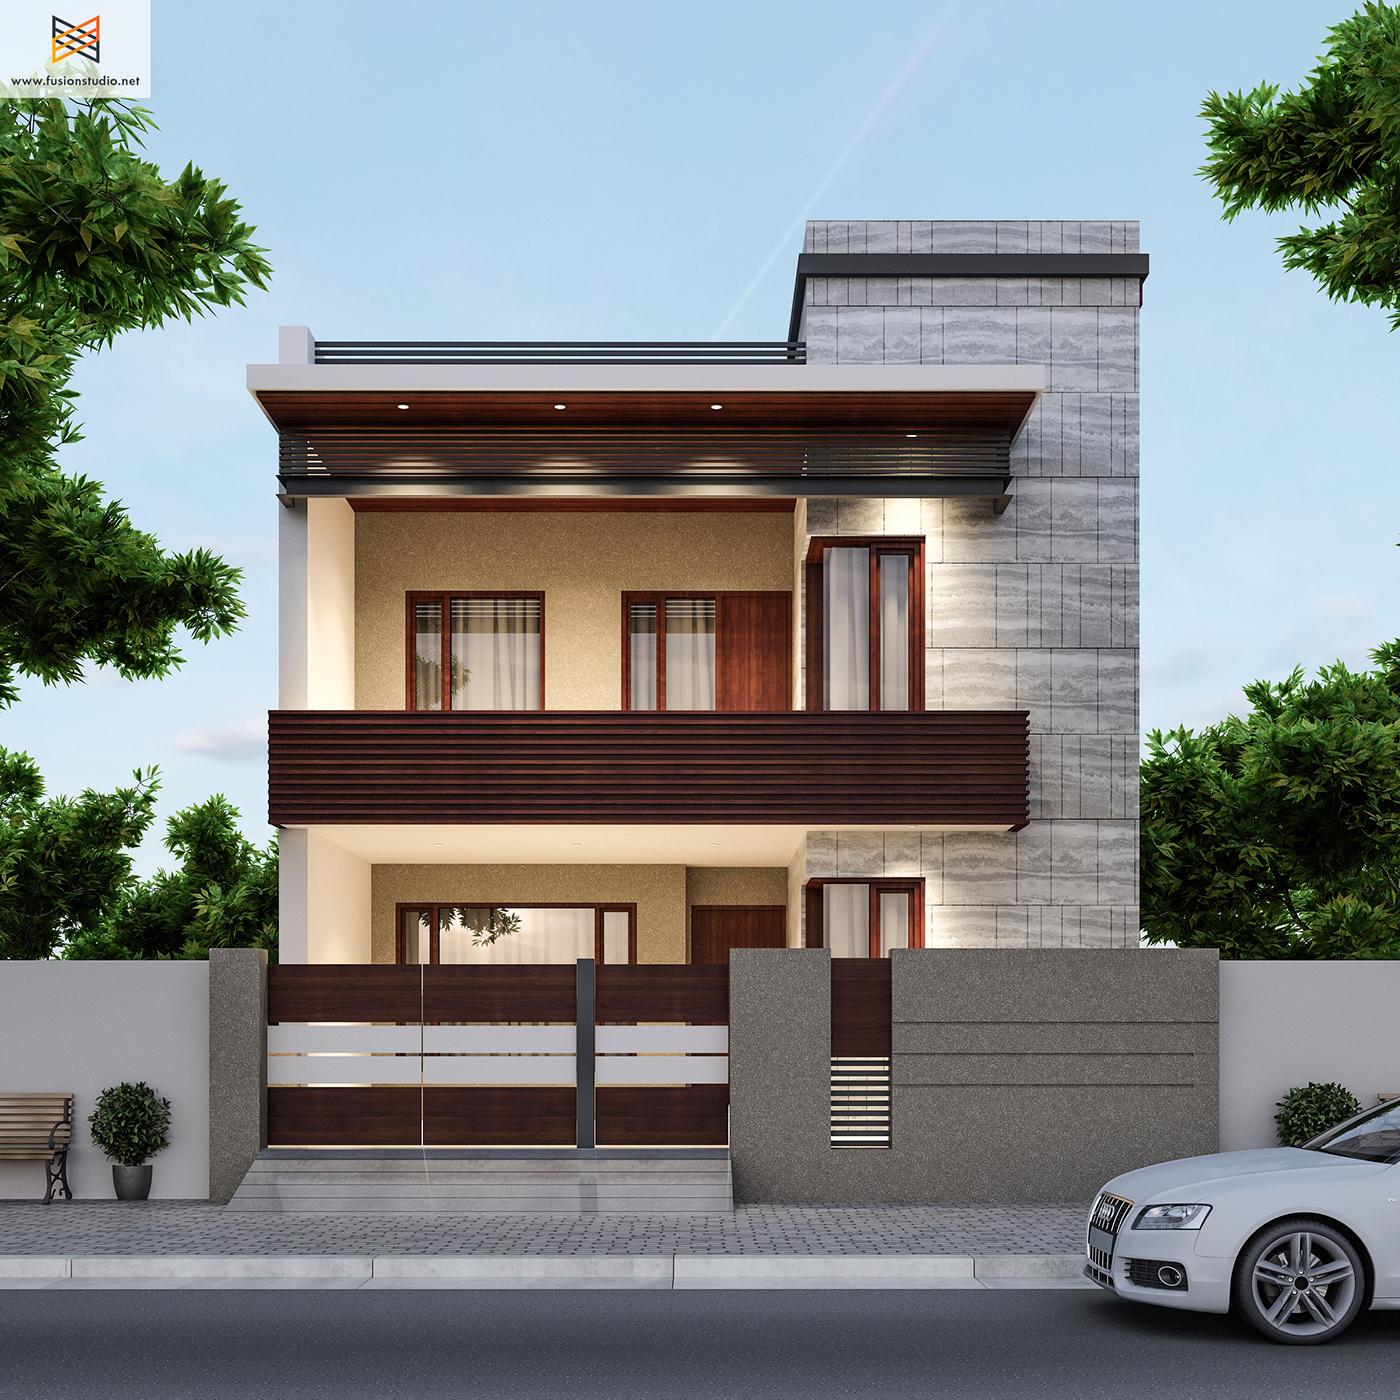 Home Design Exterior Ideas In India: 250 Yards House Elevation On Behance